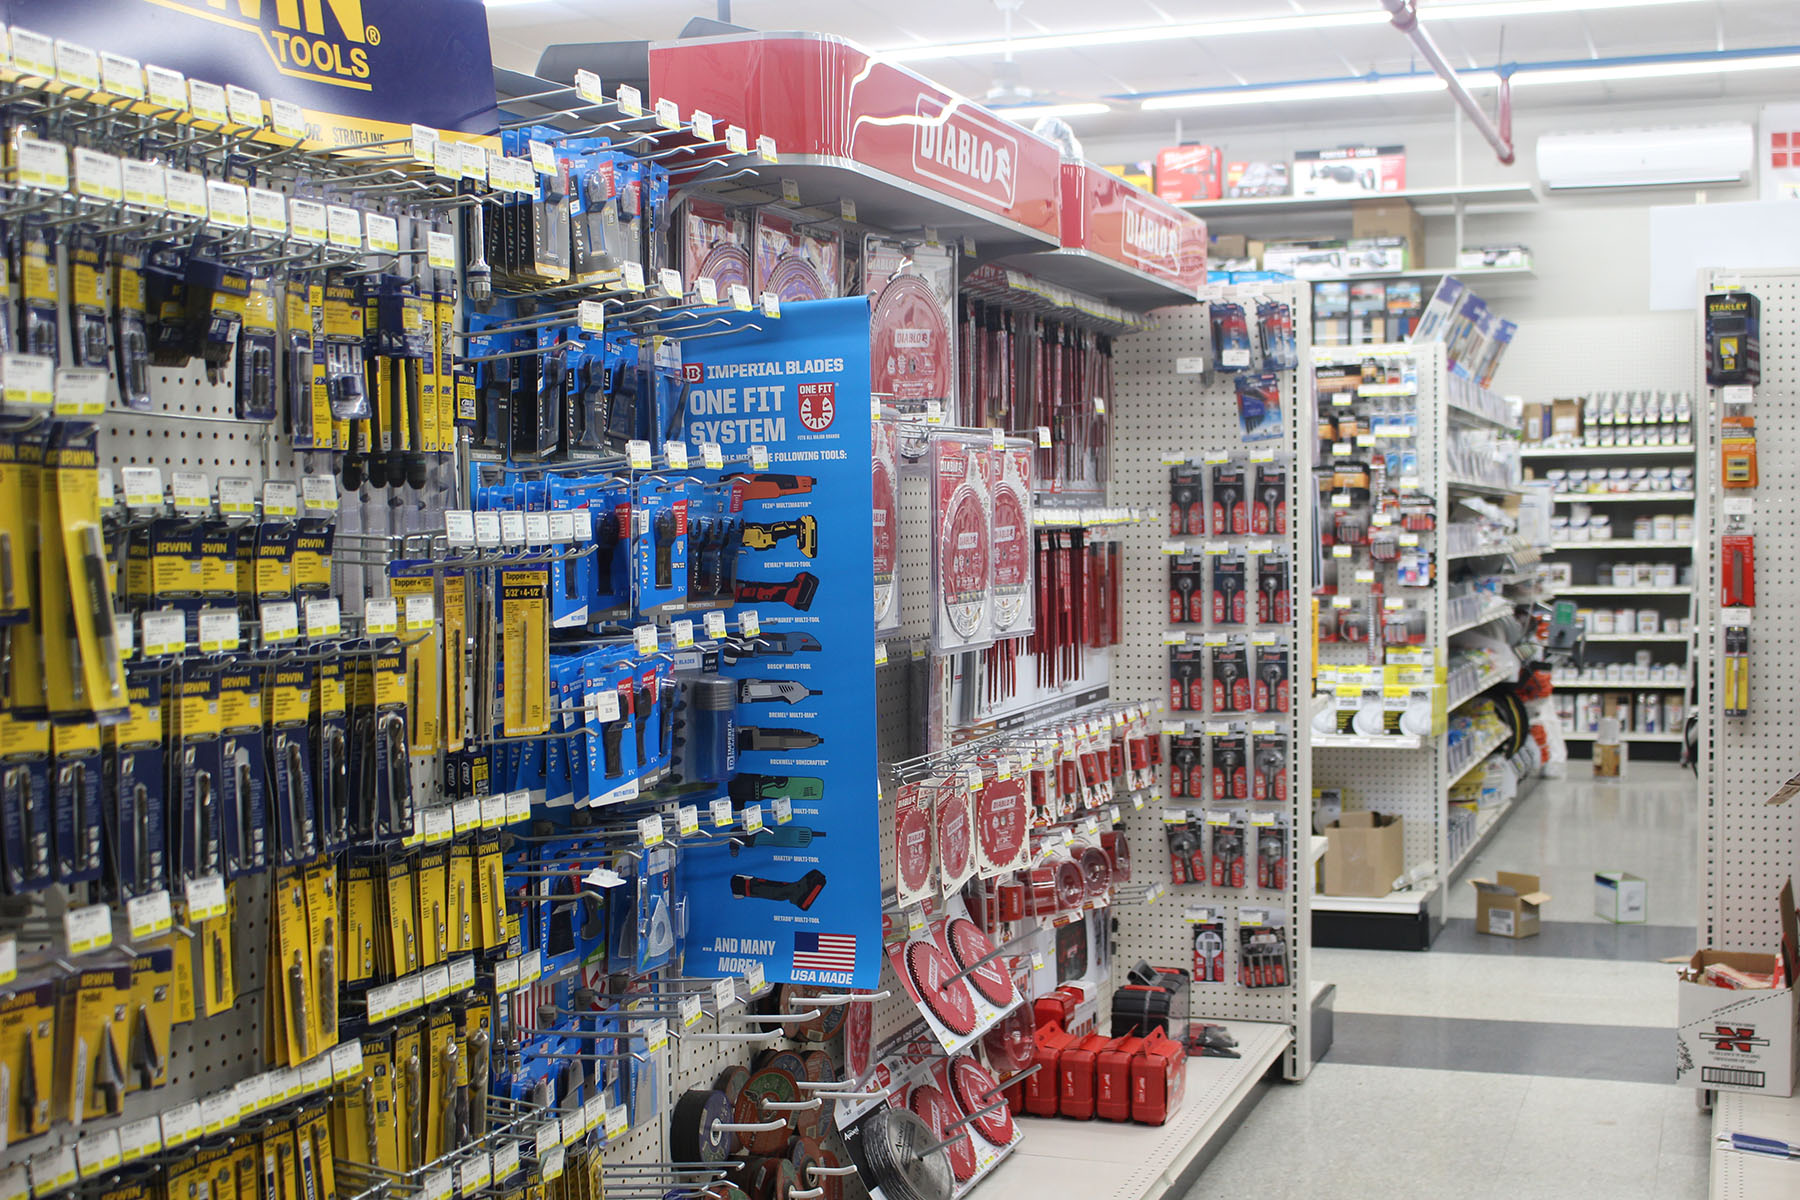 Industrial Tools Aisle